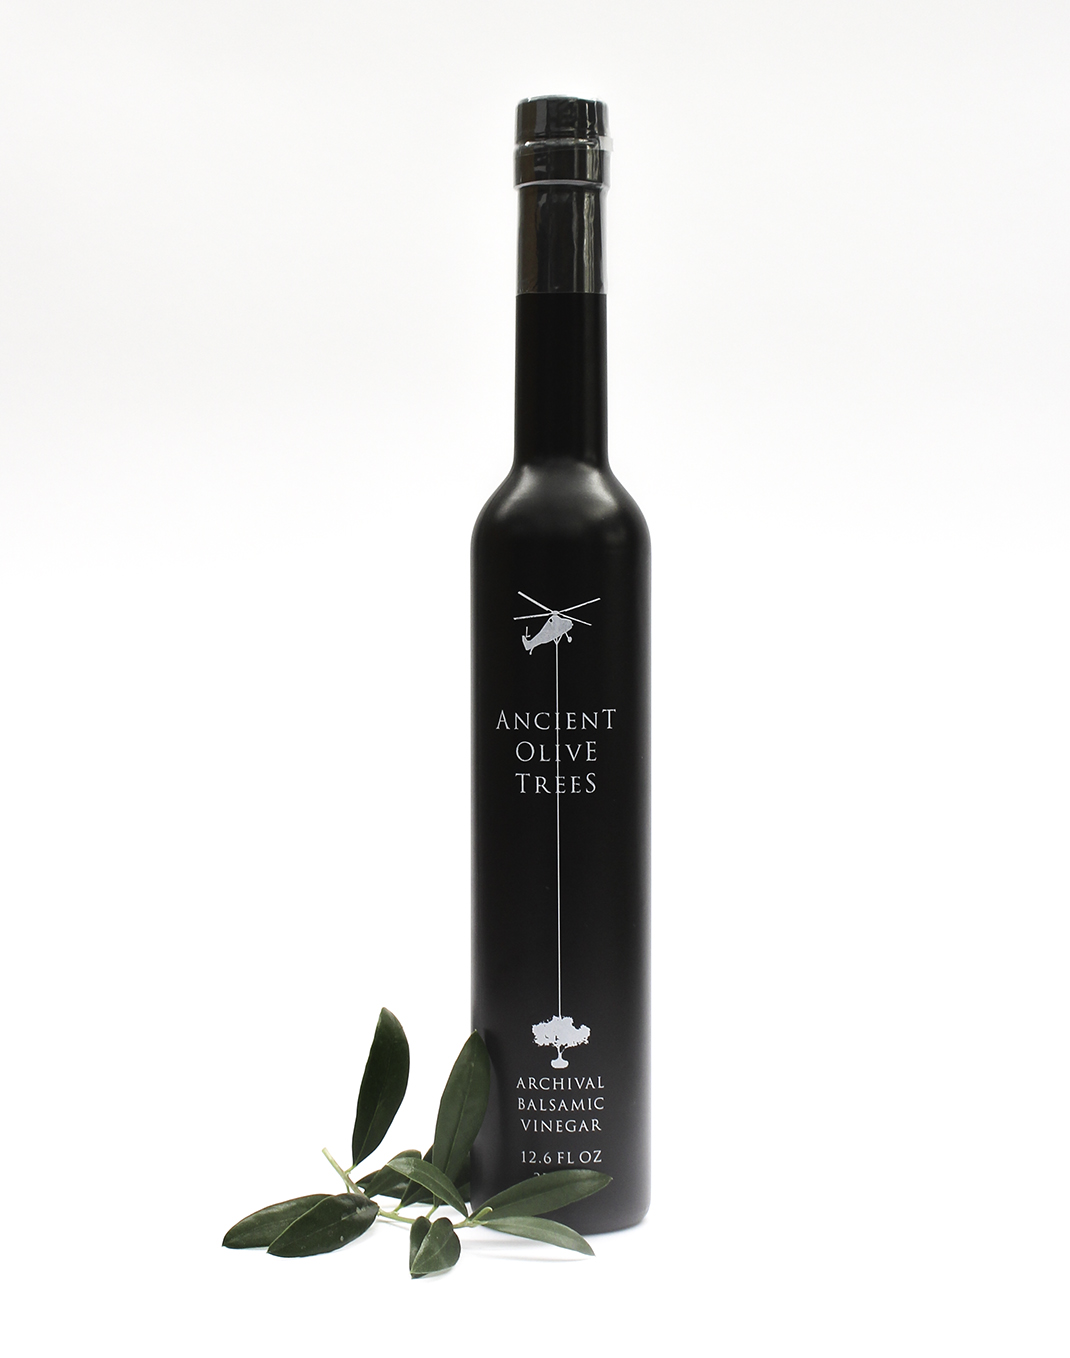 Ancient Olive Trees Archival Balsamic Vinegar